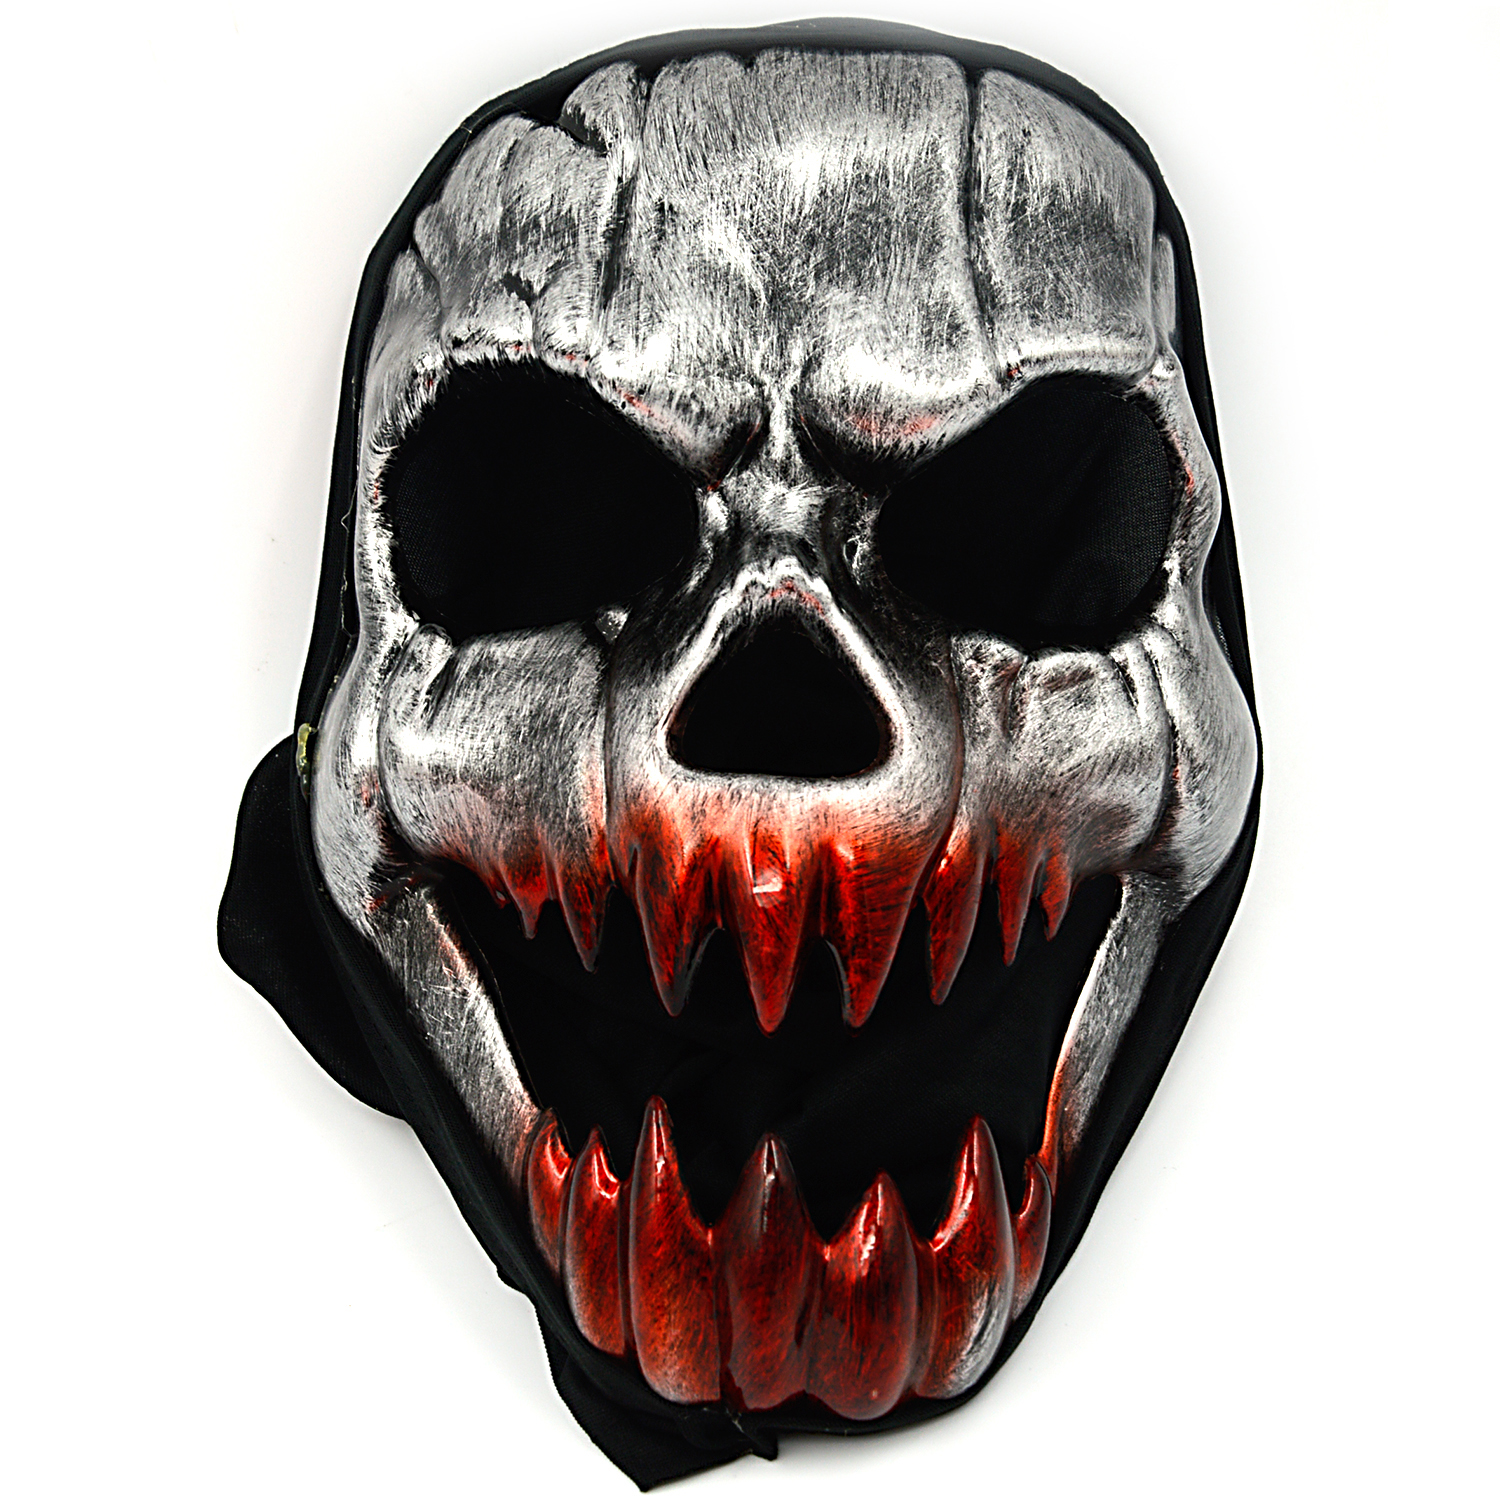 compare prices on plastic halloween masks online shoppingbuy low compare prices on plastic halloween masks online shopping buy low